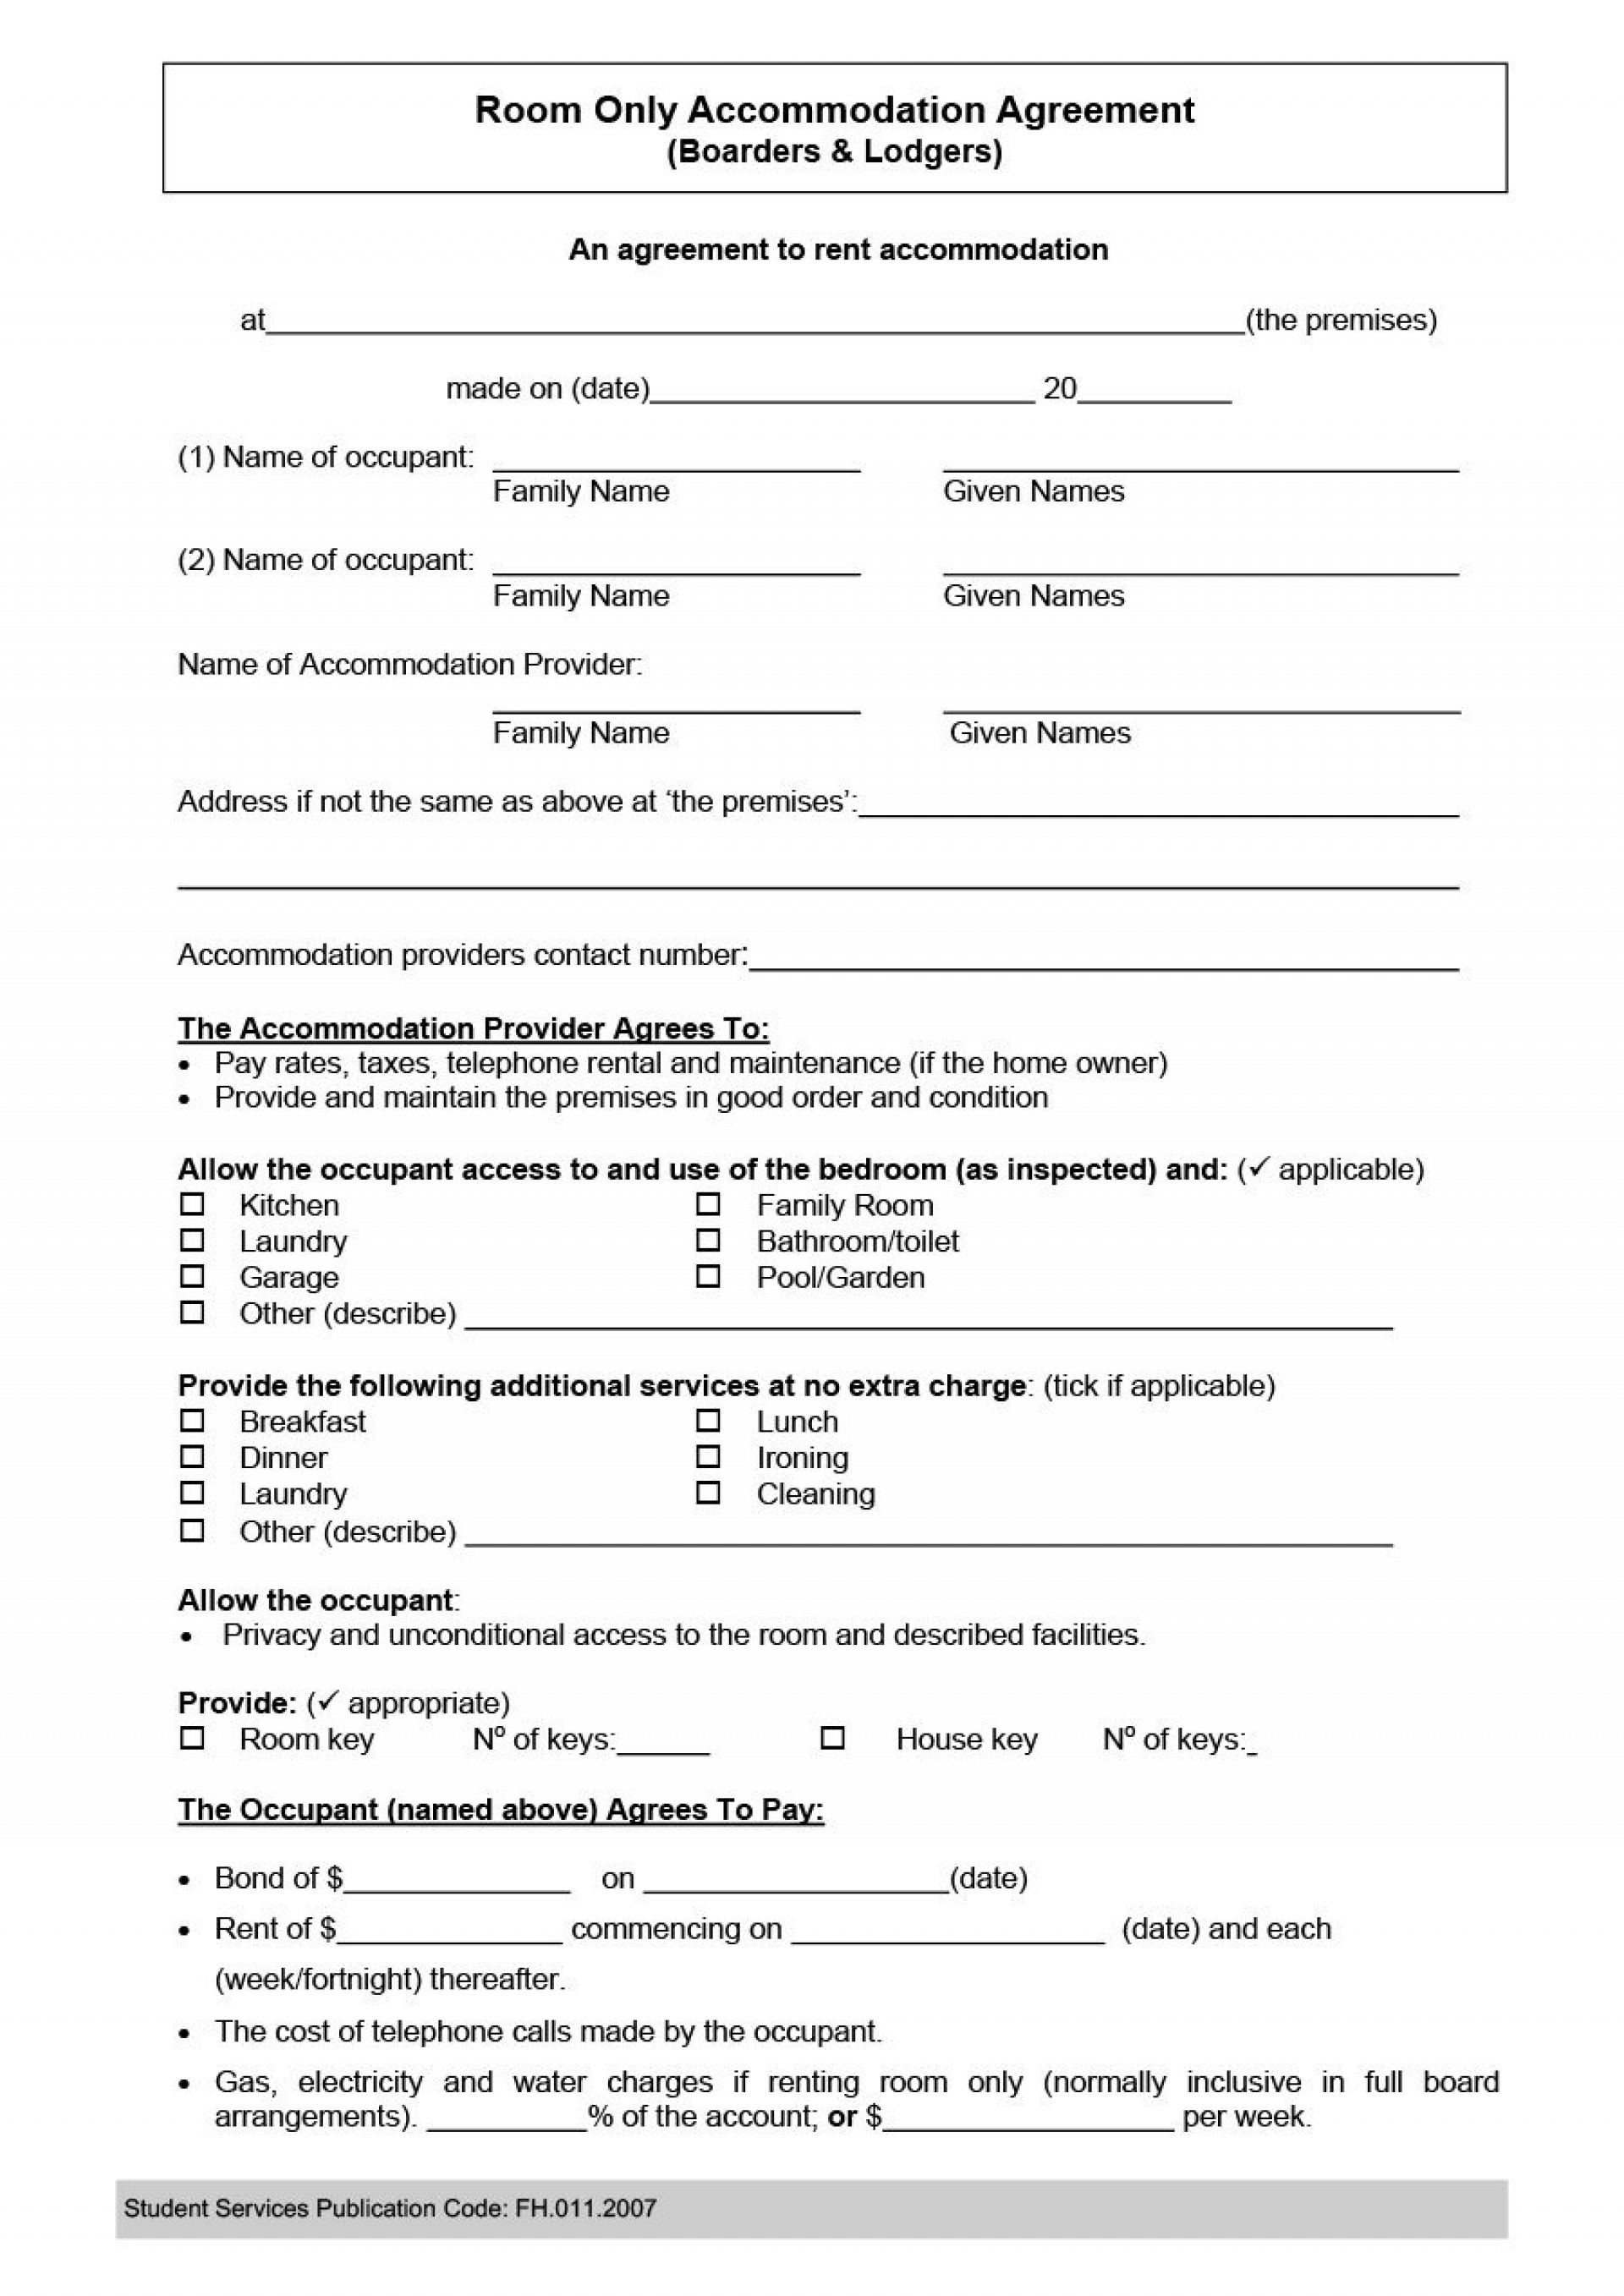 005 Incredible Generic Room Rental Agreement Free Idea  Printable1920